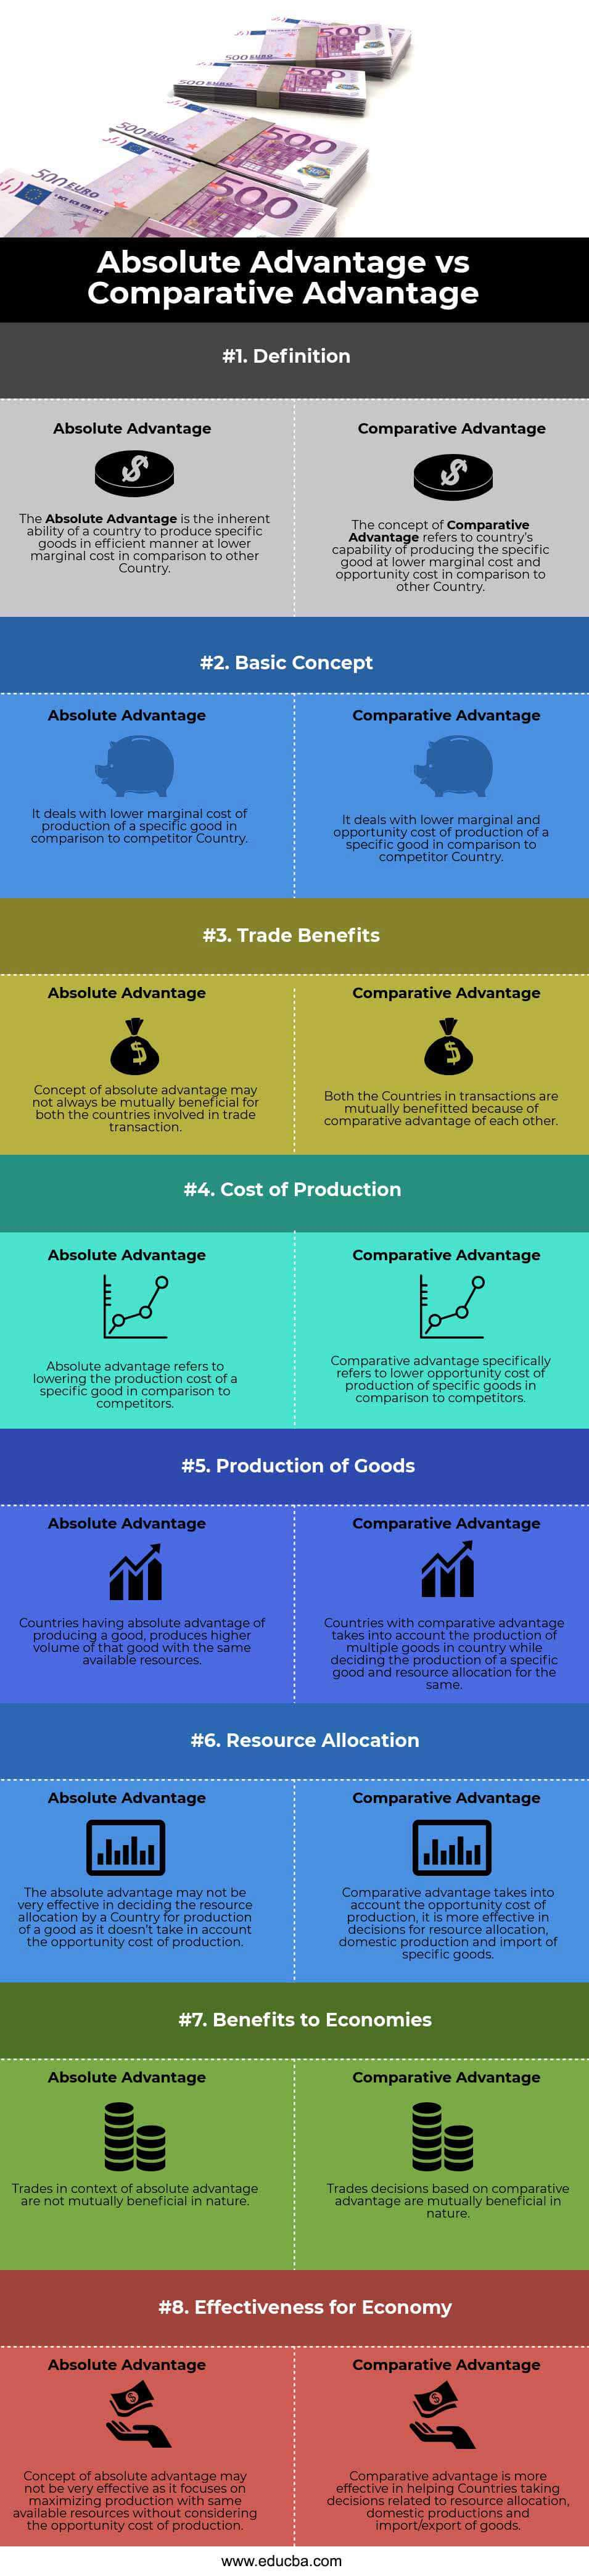 Absolute Advantage vs Comparative Advantage (info)